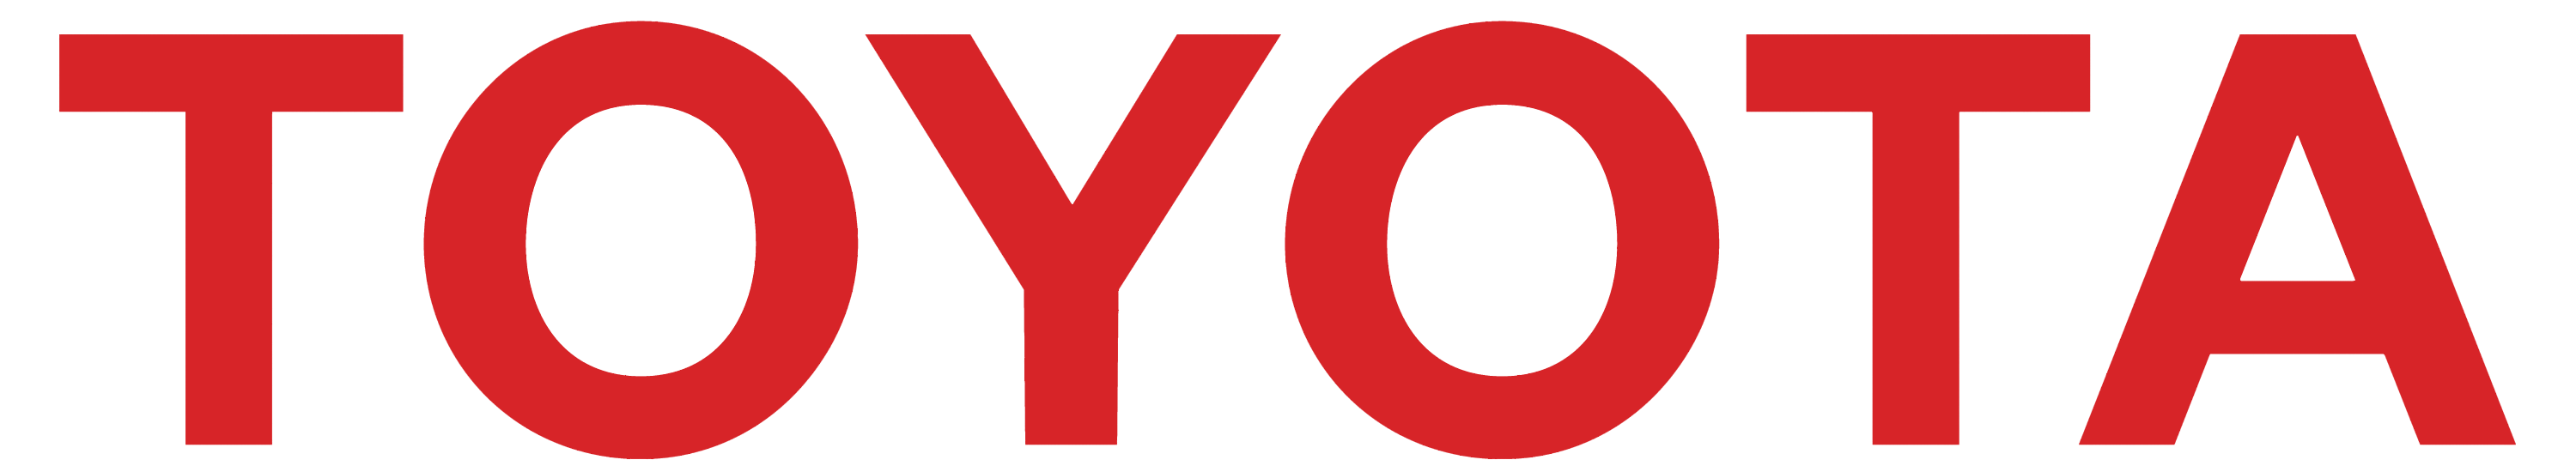 Text logo png. Toyota hd meaning information